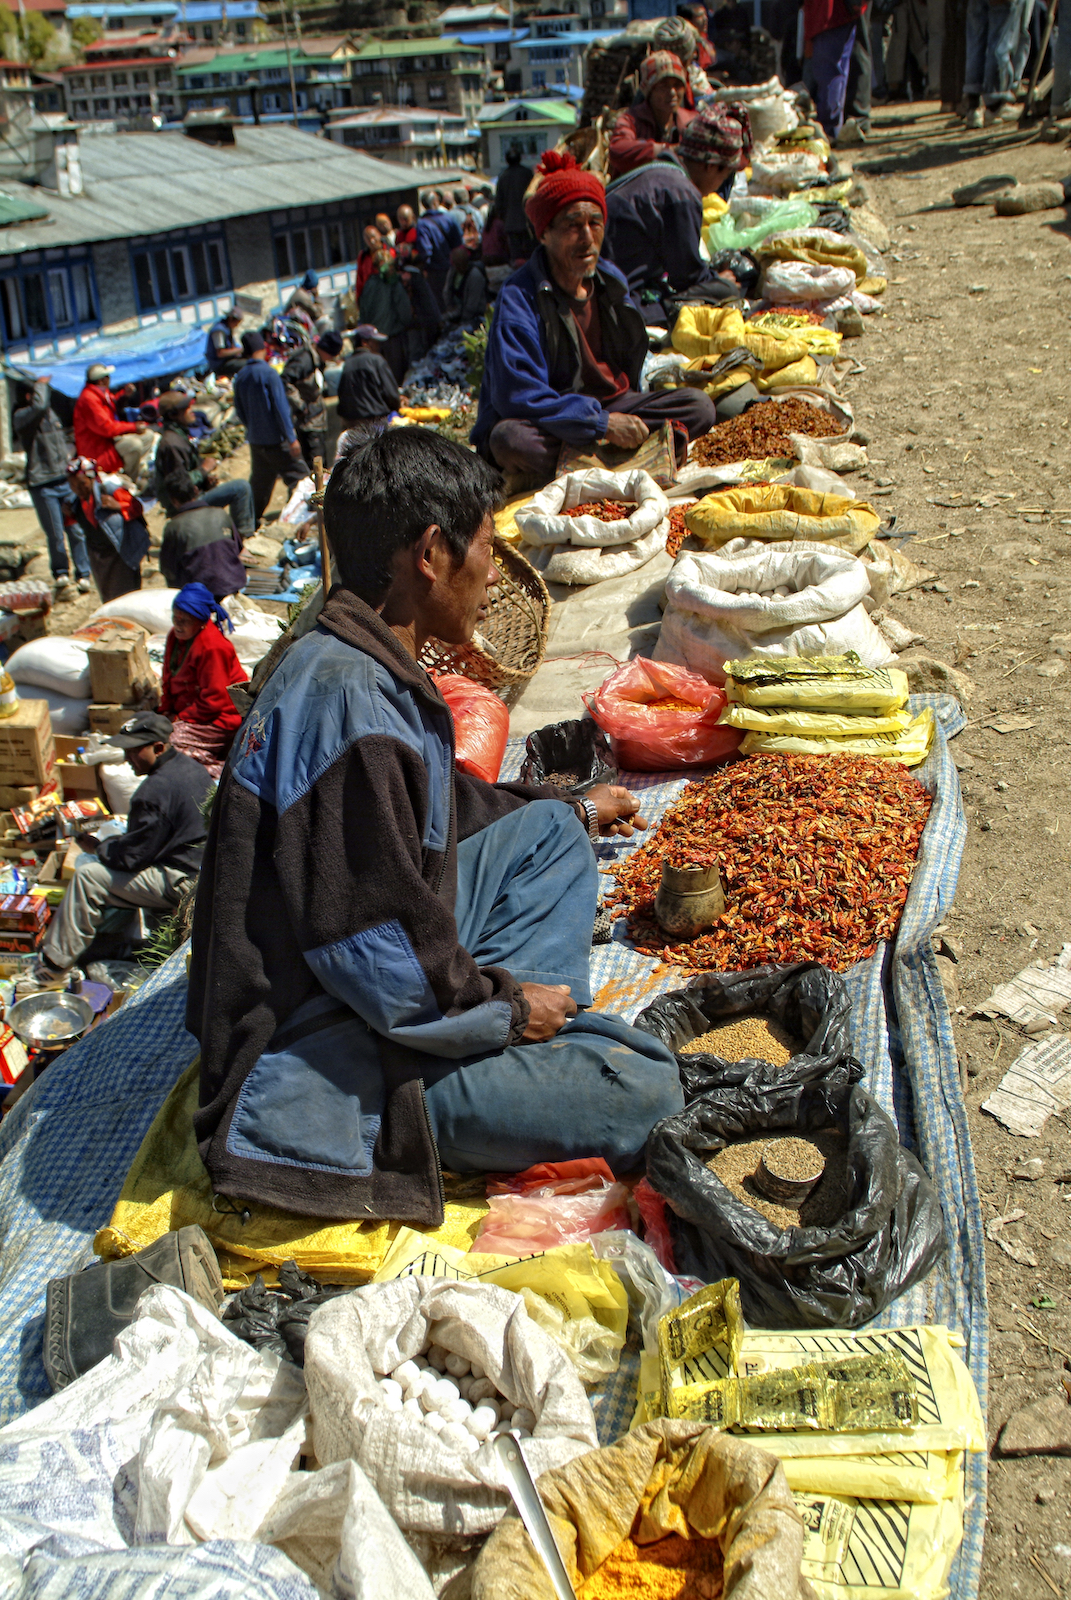 Farmers selling grain and produce at the Saturday market in Namche Bazaar, Nepal.  Image by New Orleans based travel photographer, Marc Pagani - marcpagani.com